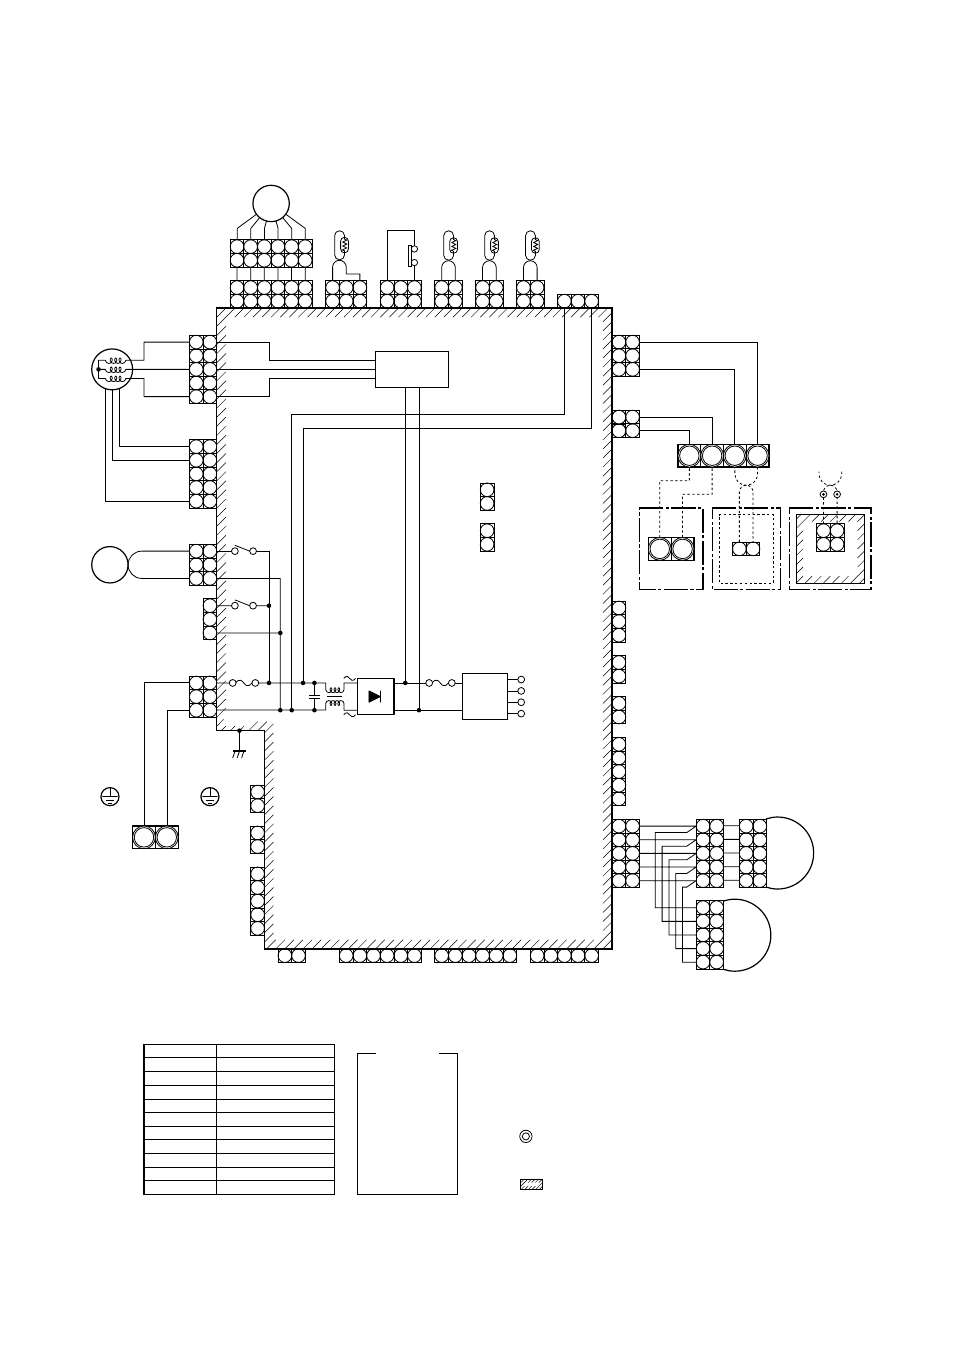 toshiba mmu ap0121mh page9 wiring diagram, control p c board for indoor unit mcc 1402 toshiba motor wiring diagram at readyjetset.co